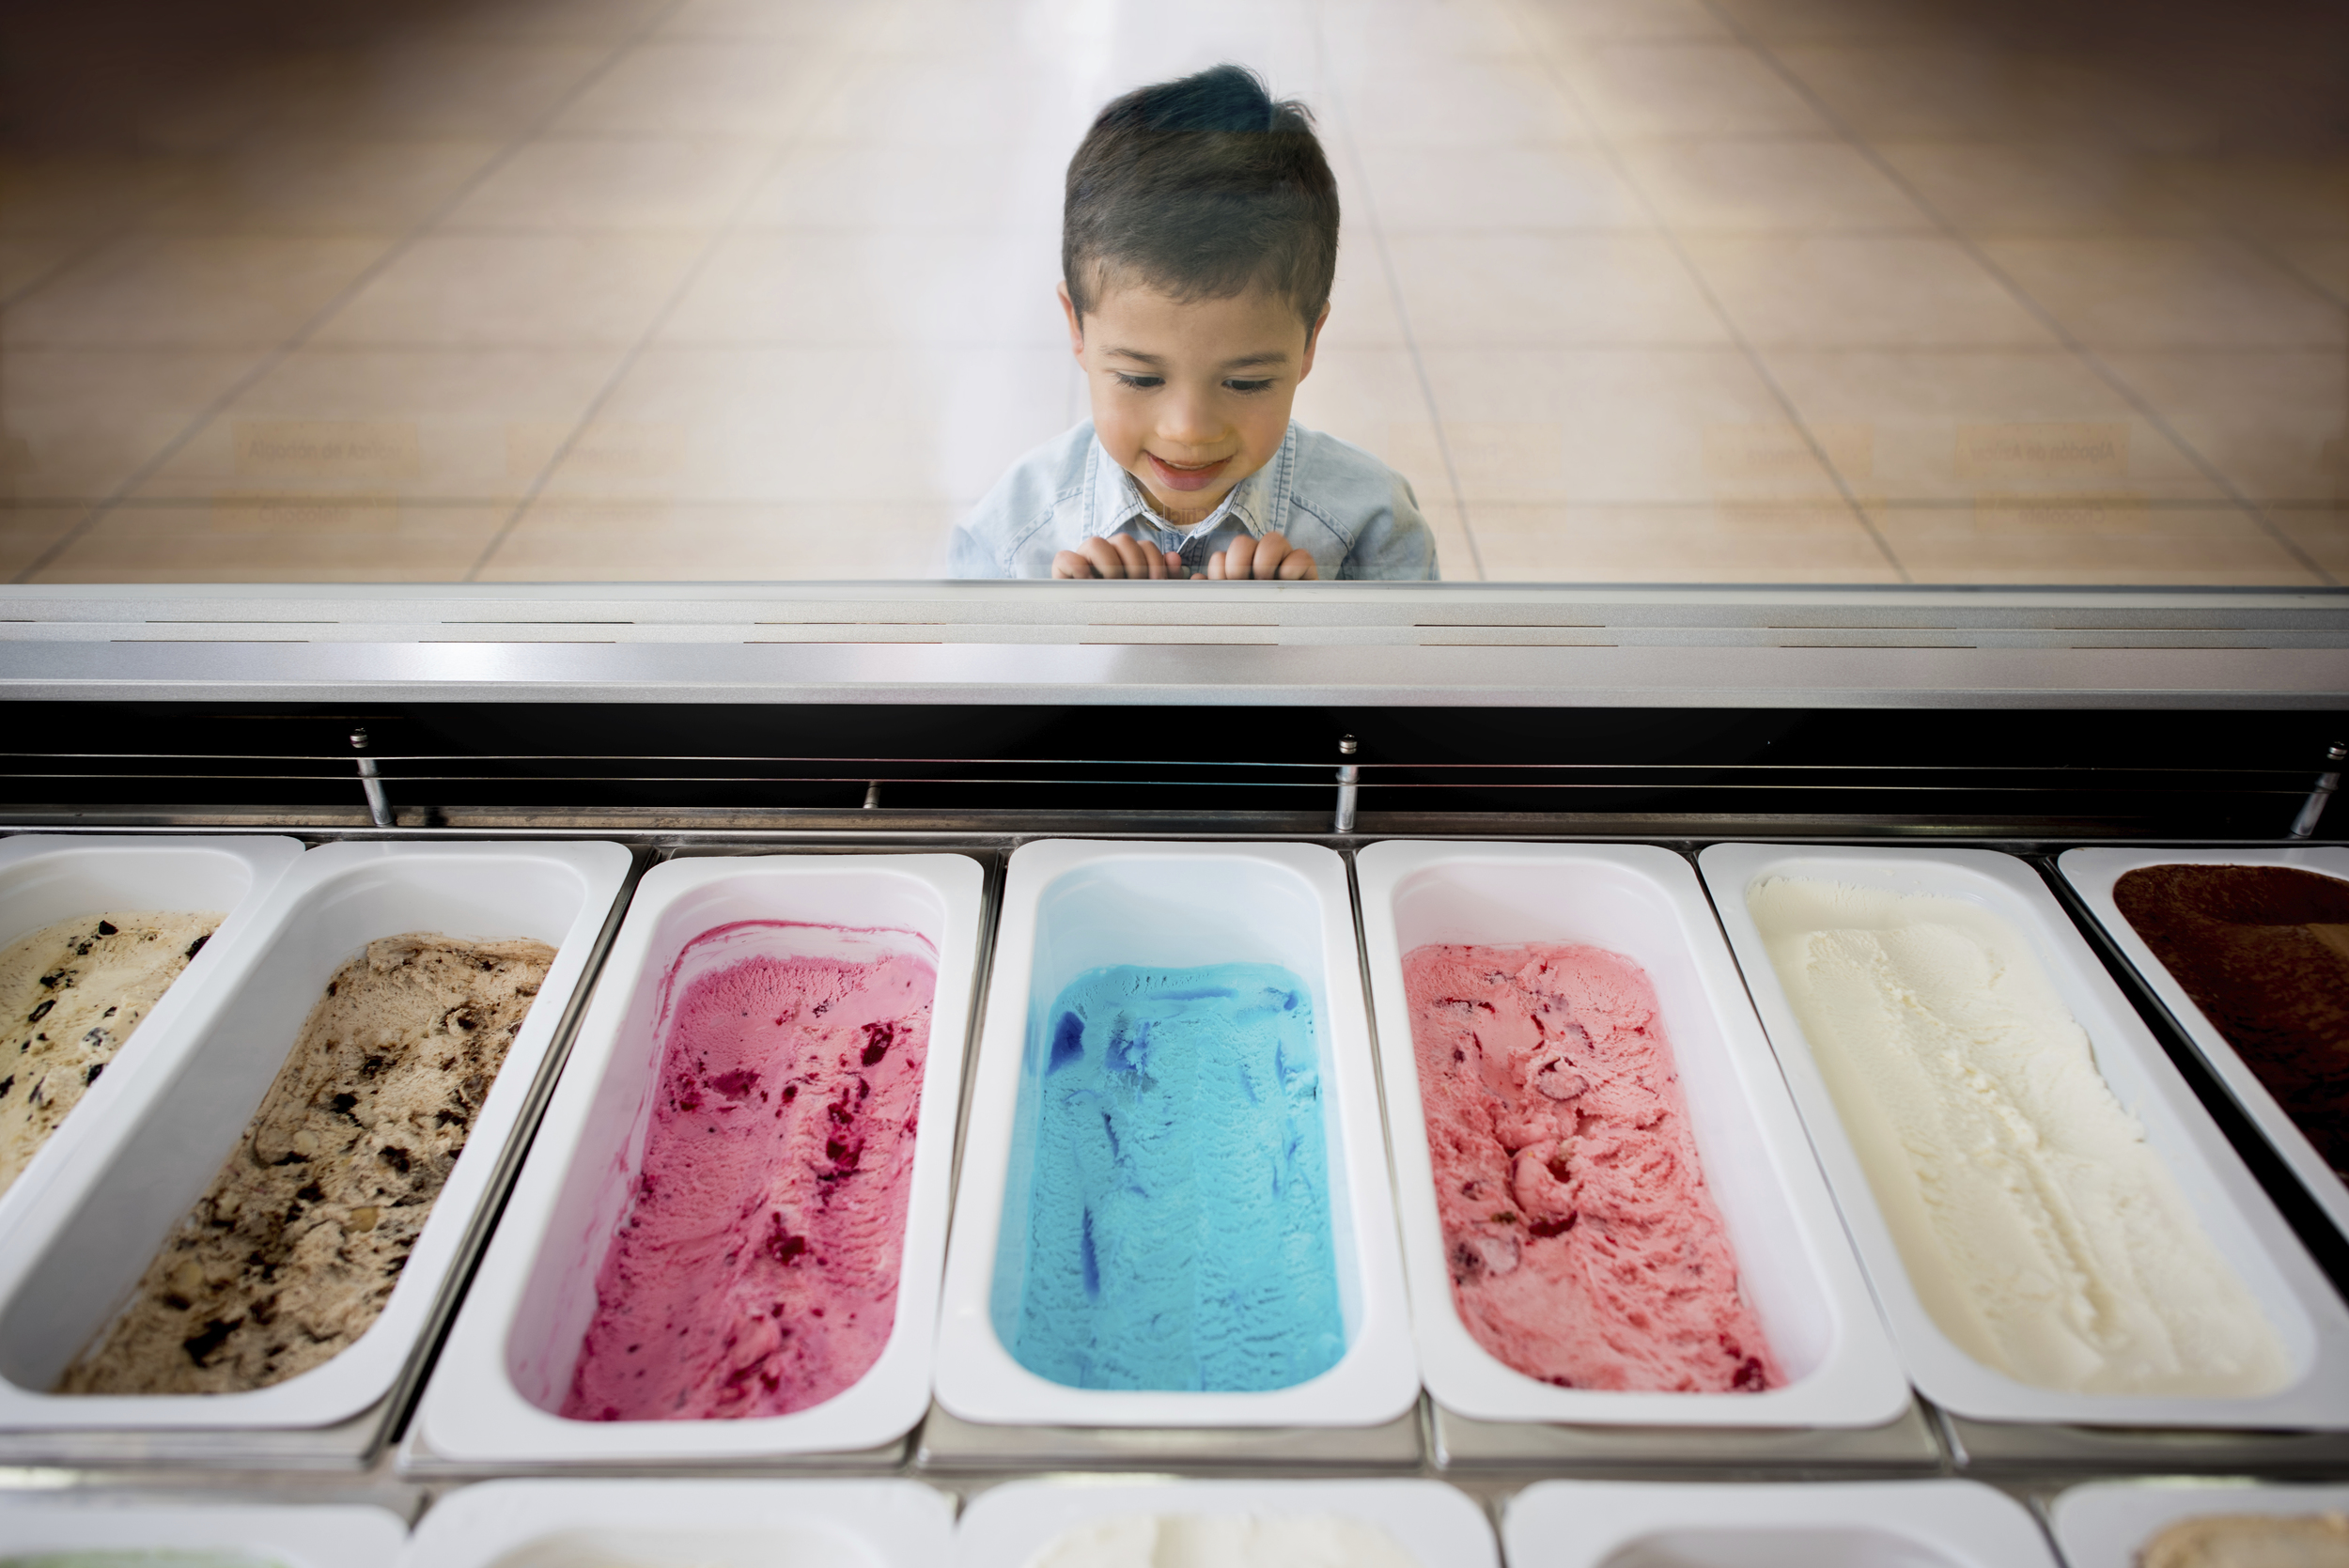 Like a kid in an ice cream shop, we often do not know what we want until we browse